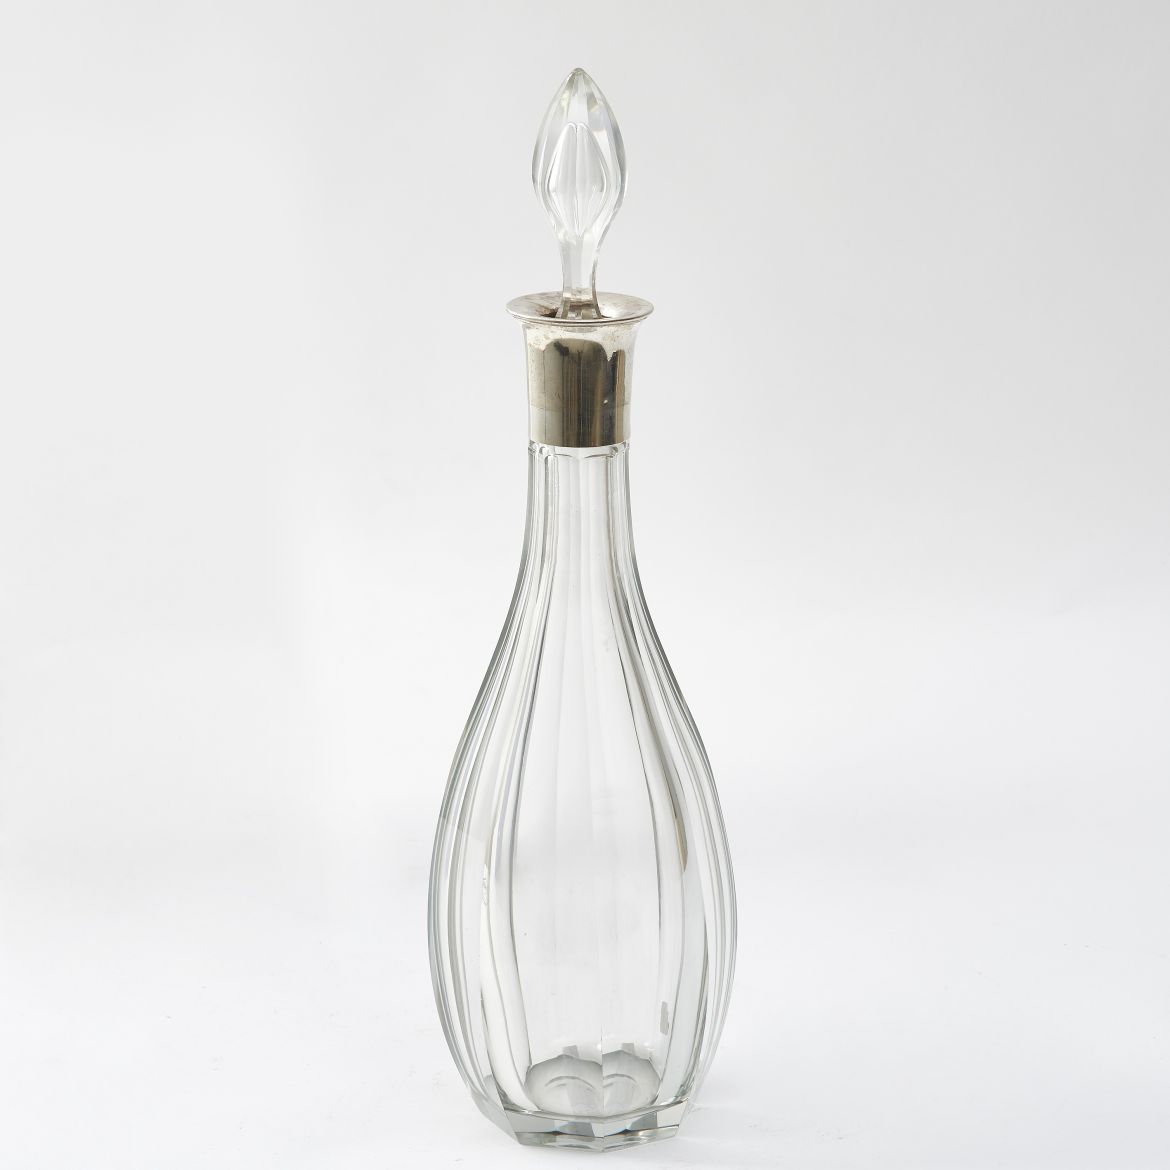 Tall French Art Deco Decanter